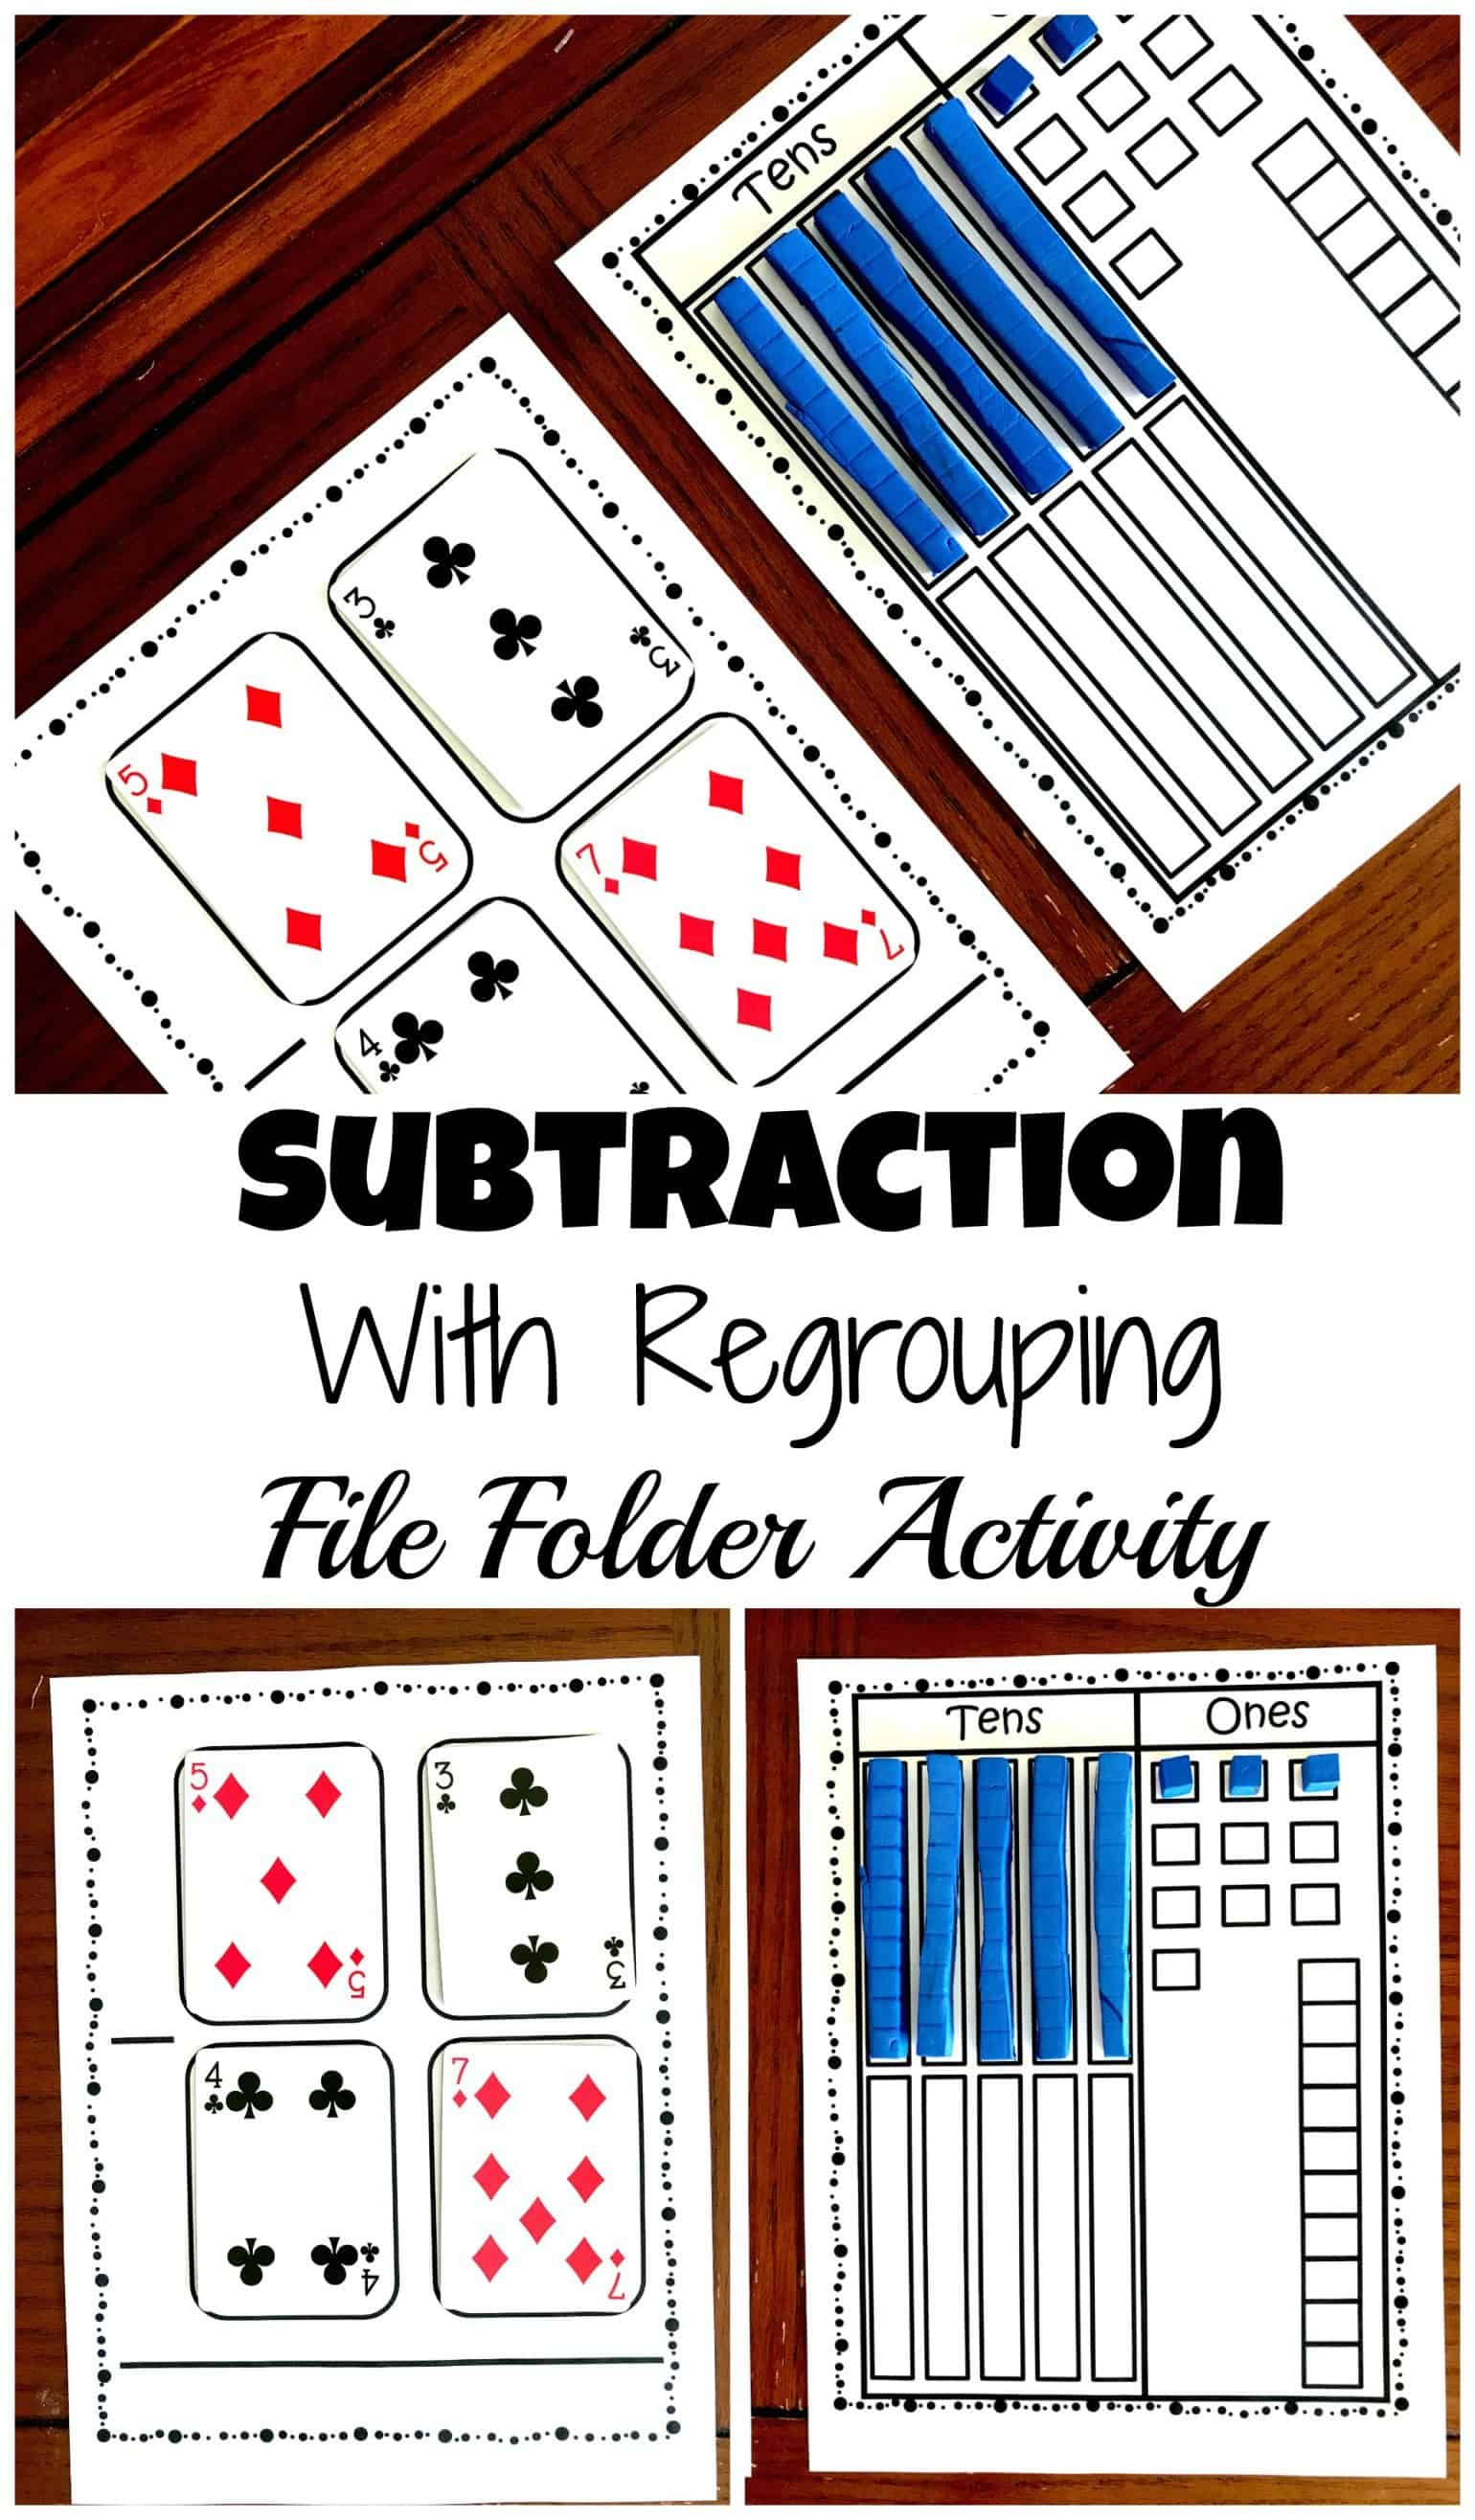 Subtractions With Regrouping File Folder Activity And Free